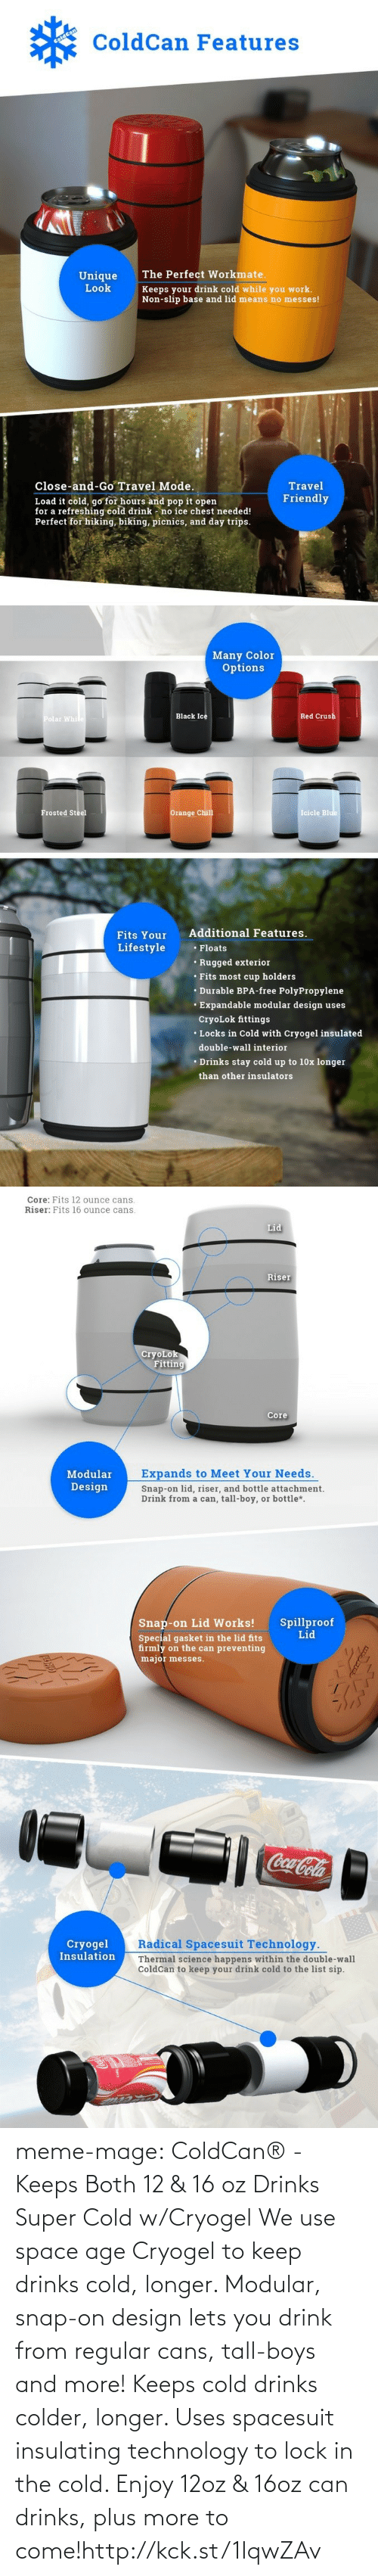 Frosted: ColdCan Features  The Perfect Workmate.  Keeps your drink cold while you work.  Non-slip base and lid means no messes!  Unique  Look  Travel  Close-and-Go Travel Mode.  Friendly  Load it cold, go for hours and pop it open  for a refreshing cold drink - no ice chest needed!  Perfect for hiking, biking, picnics, and day trips.   Many Color  Options  Polar While  Black Ice  Red Crush  Icicle Blue  Orange Chill  Frosted Steel  Additional Features.  Fits Your  Lifestyle  • Floats  • Rugged exterior  • Fits most cup holders  • Durable BPA-free PolyPropylene  • Expandable modular design uses  CryoLok fittings  • Locks in Cold with Cryogel insulated  double-wall interior  • Drinks stay cold up to 10x longer  than other insulators   Core: Fits 12 ounce cans.  Riser: Fits 16 ounce cans.  Lid  Riser  CryoLok  Fitting  Core  Expands to Meet Your Needs.  Modular  Design  Snap-on lid, riser, and bottle attachment.  Drink from a can, tall-boy, or bottle*.  Spillproof  Lid  Snap-on Lid Works!  Special gasket in the lid fits  firmly on the can preventing  major messes.  Coca-Cola  Radical Spacesuit Technology.  Cryogel  Insulation  Thermal science happens within the double-wall  ColdCan to keep your drink cold to the list sip. meme-mage:  ColdCan® - Keeps Both 12 & 16 oz Drinks Super Cold w/Cryogel We use space age Cryogel to keep drinks cold, longer. Modular, snap-on  design lets you drink from regular cans, tall-boys and more! Keeps cold drinks colder, longer. Uses spacesuit insulating  technology to lock in the cold. Enjoy 12oz & 16oz can drinks, plus  more to come!http://kck.st/1IqwZAv